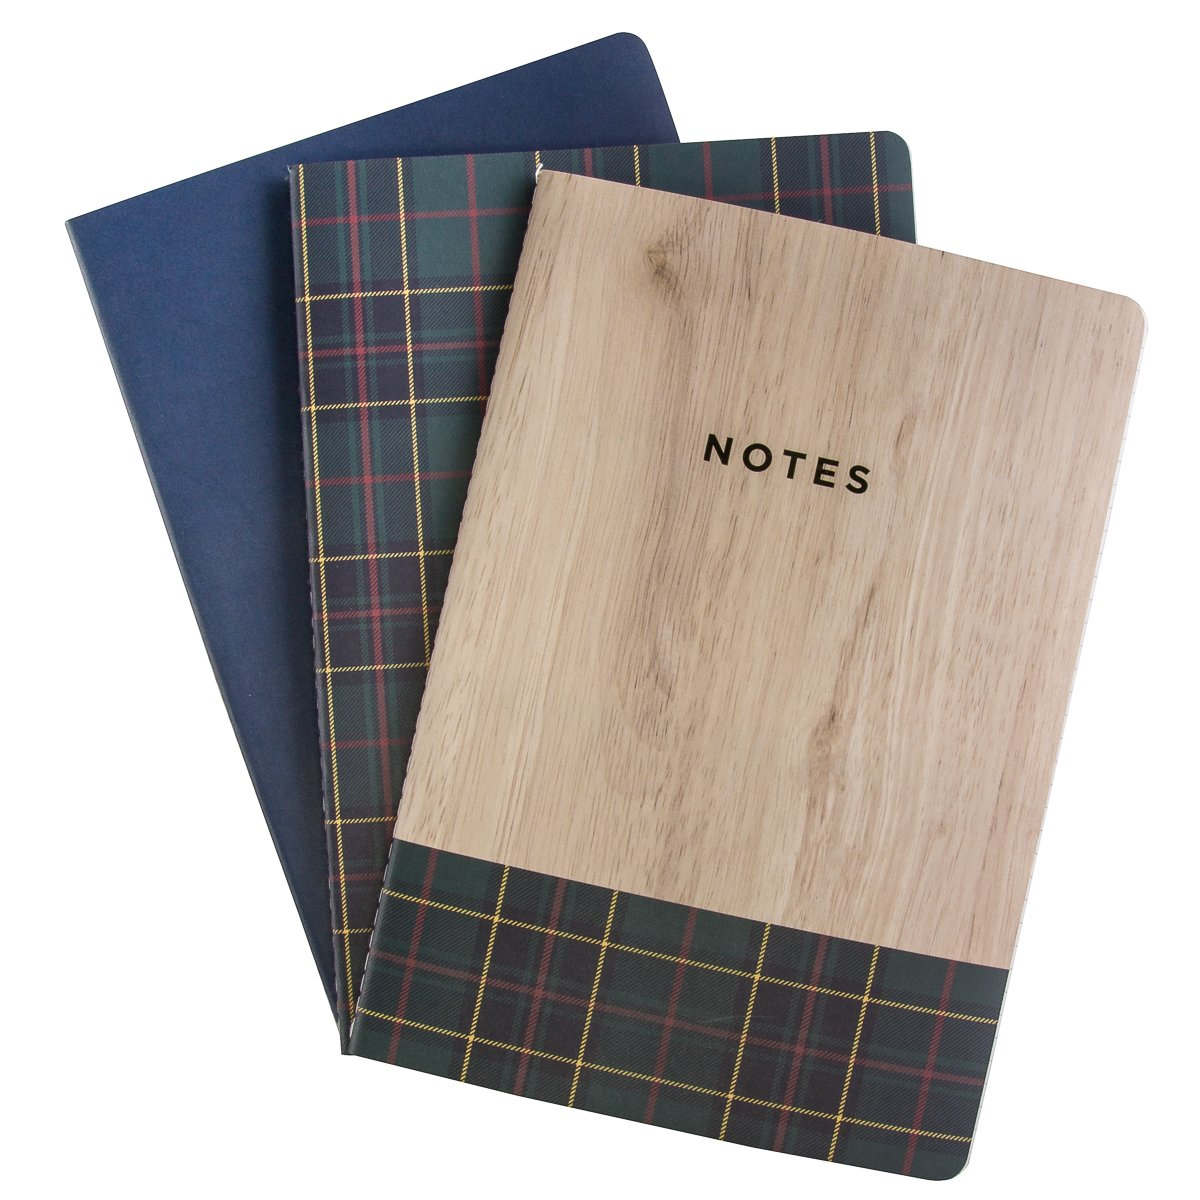 """George Stanley (3 Pack) Journals to Write in 10 x 7"""" Notebook Soft Cover Ruled 120 Lined Pages Bulk"""